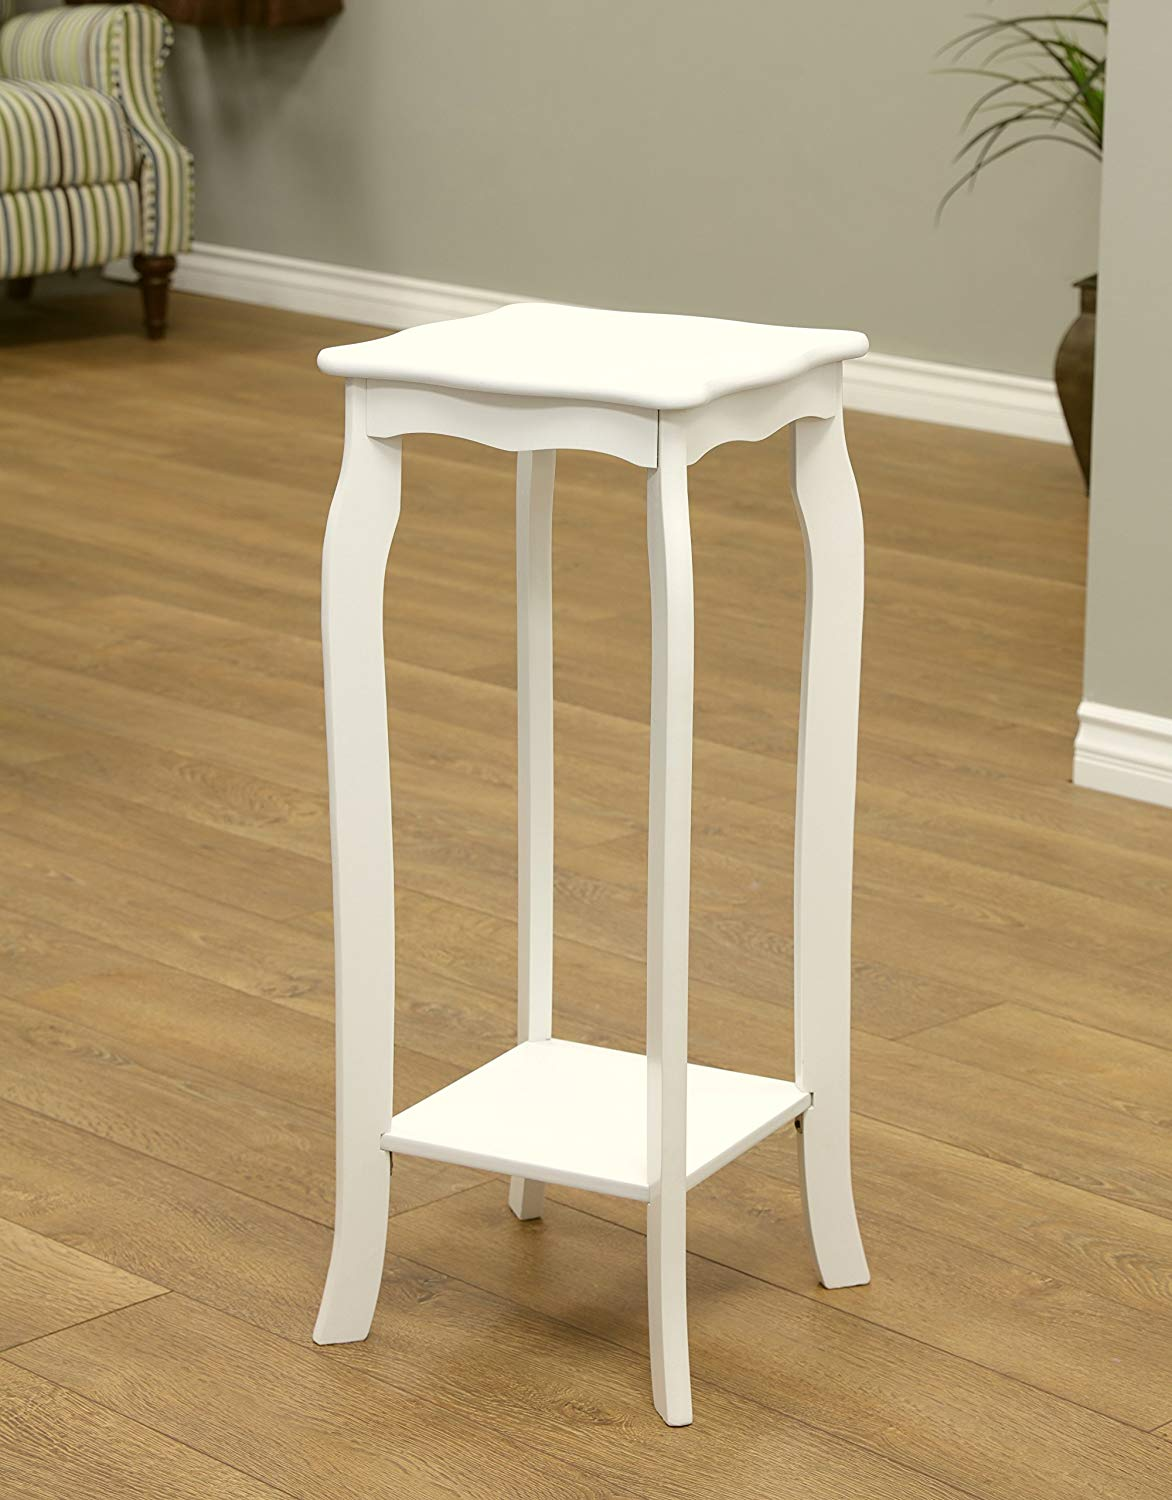 frenchi home furnishing plant stand small white sasha round accent table kitchen dining accents furniture pottery barn toscana cement low square coffee ikea wall storage bins